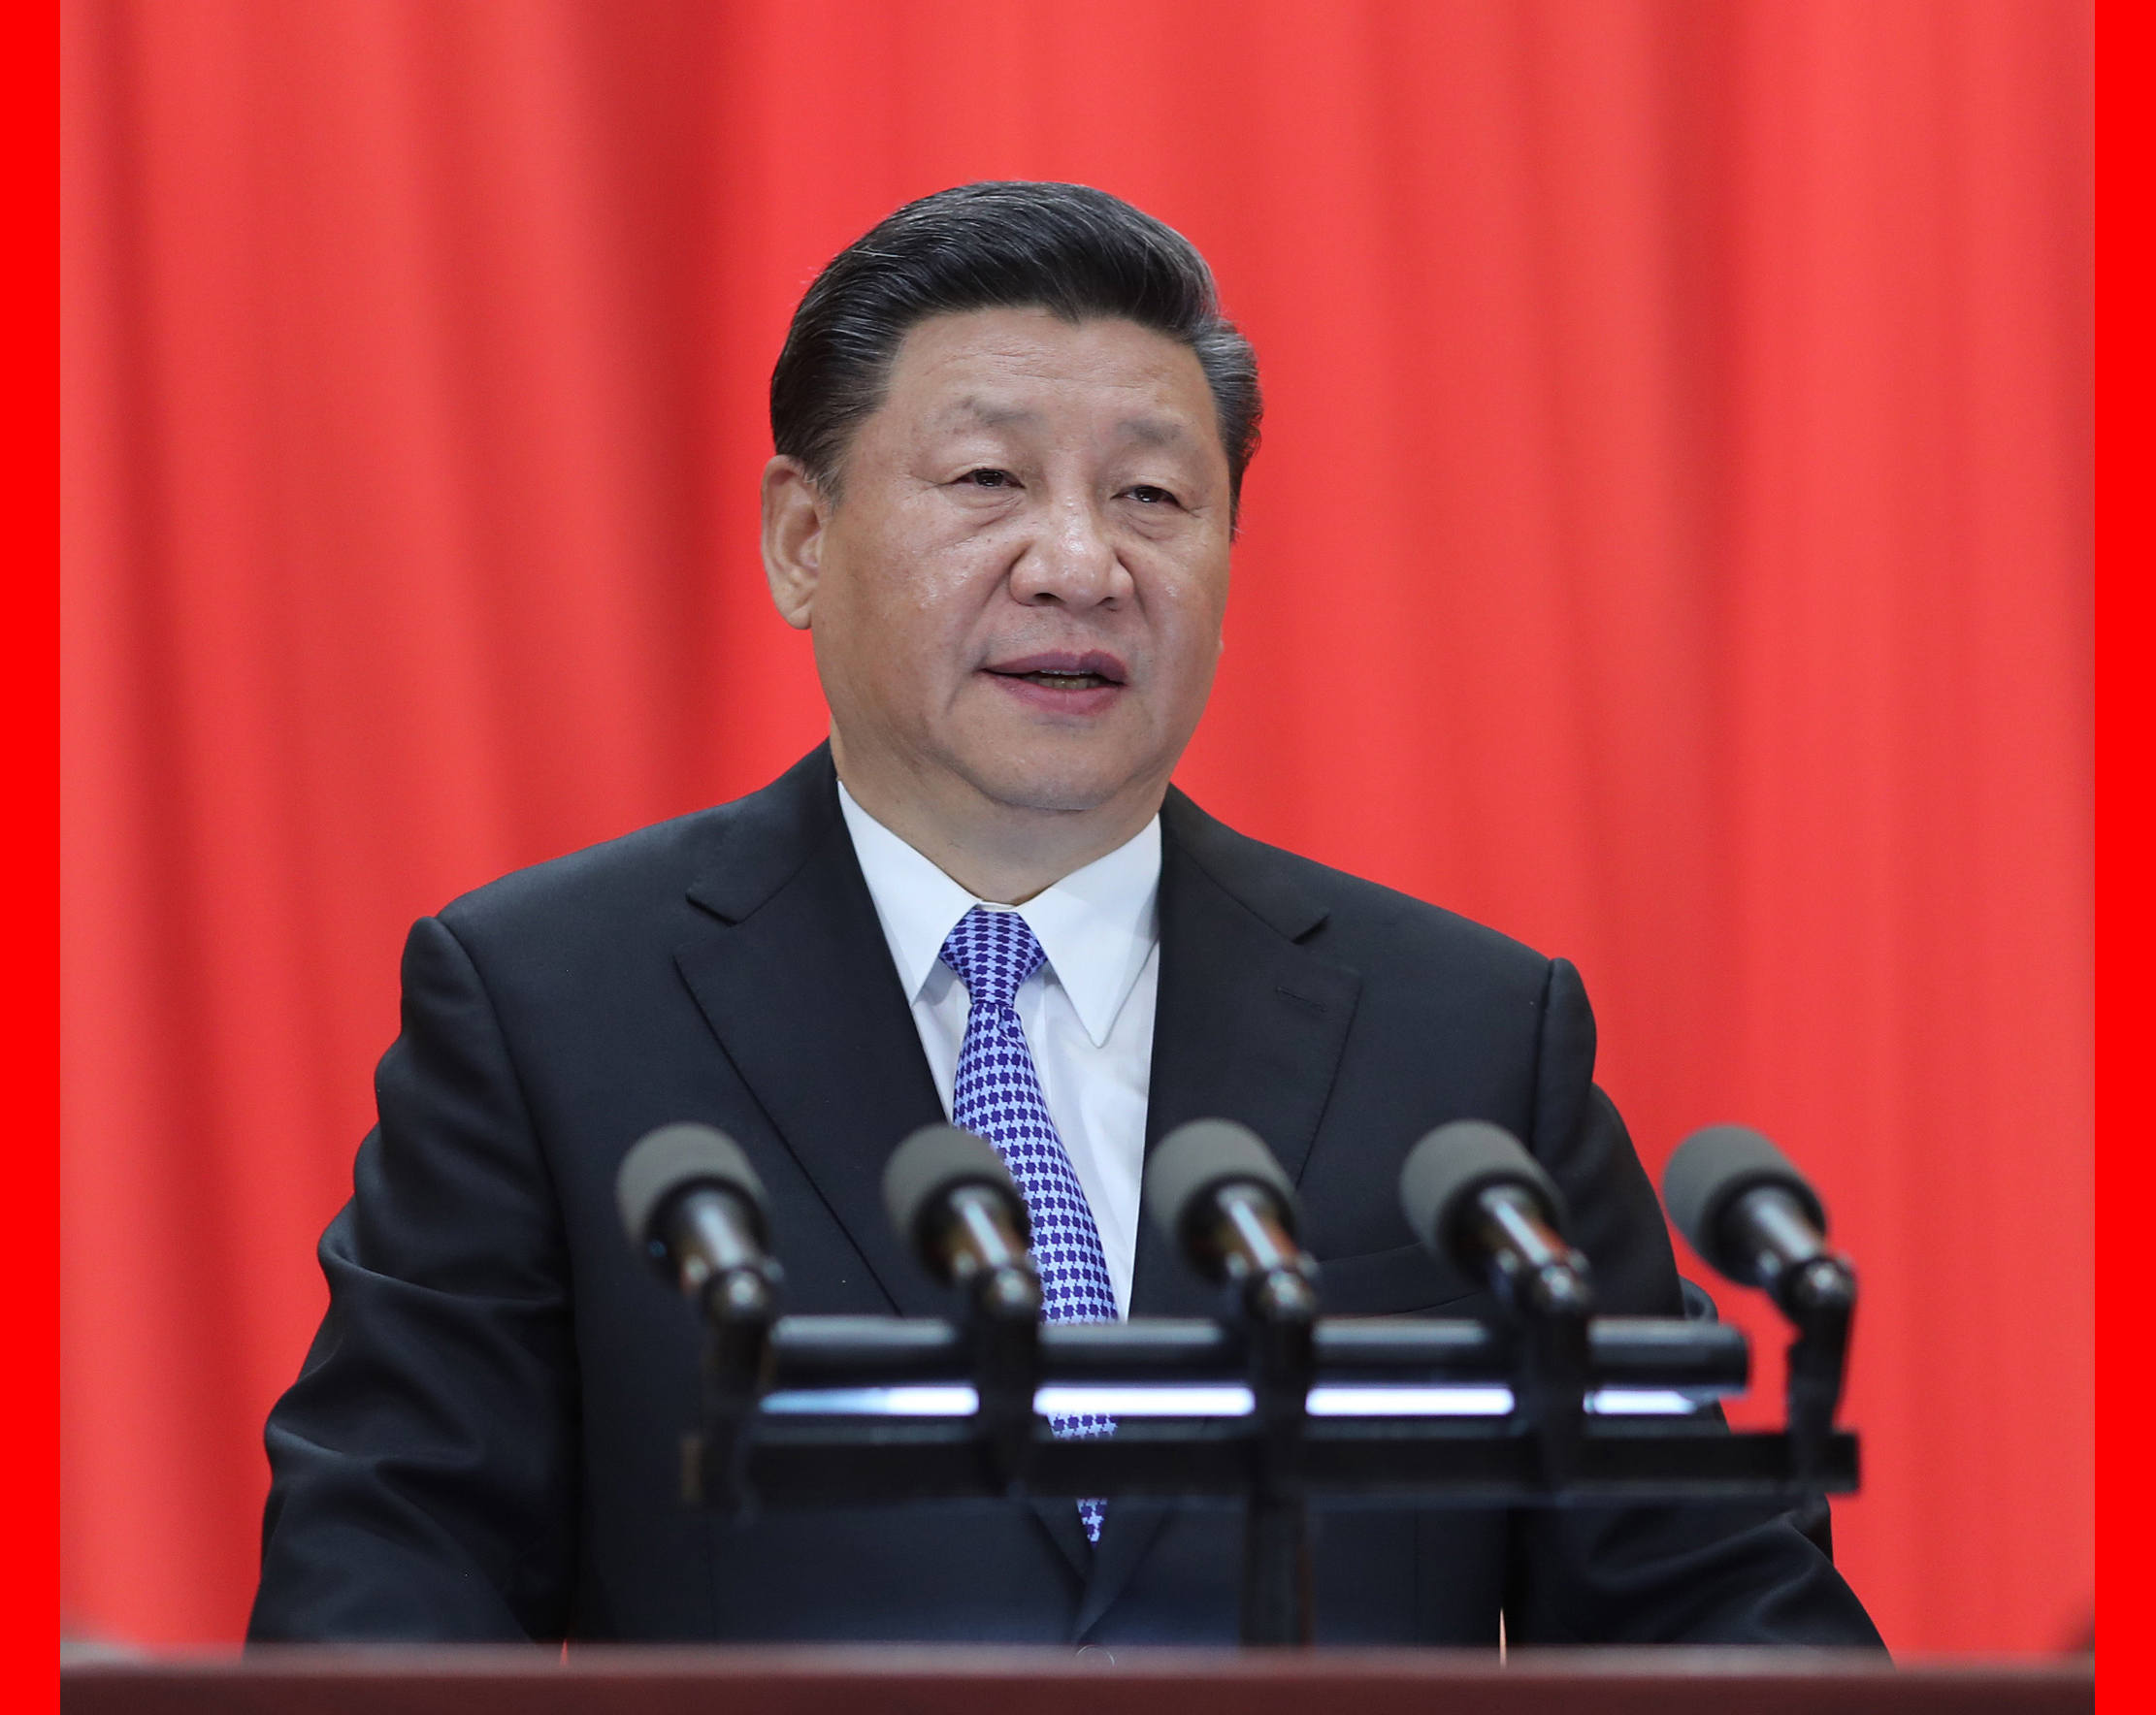 CPC pledges to fully incorporate core socialist values in legislation